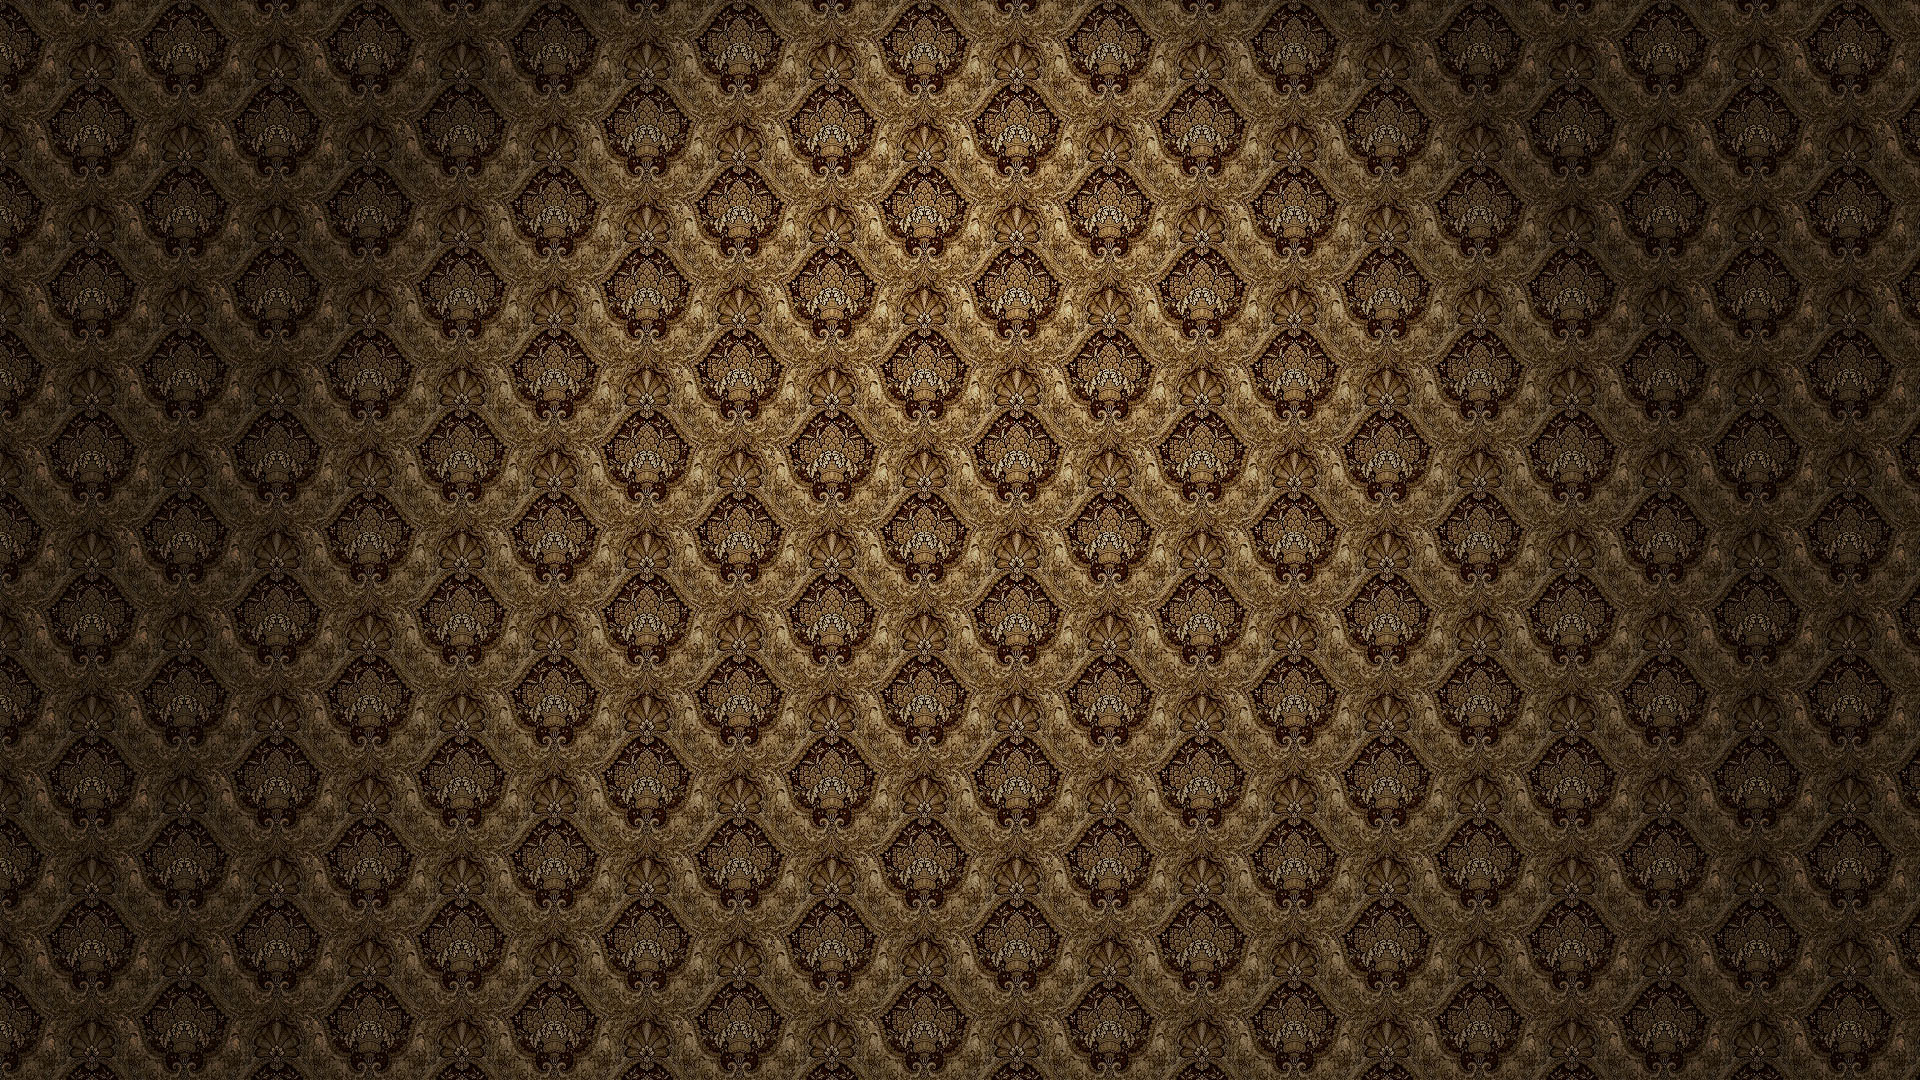 Gold and Black Pattern Wallpapers 1920x1080